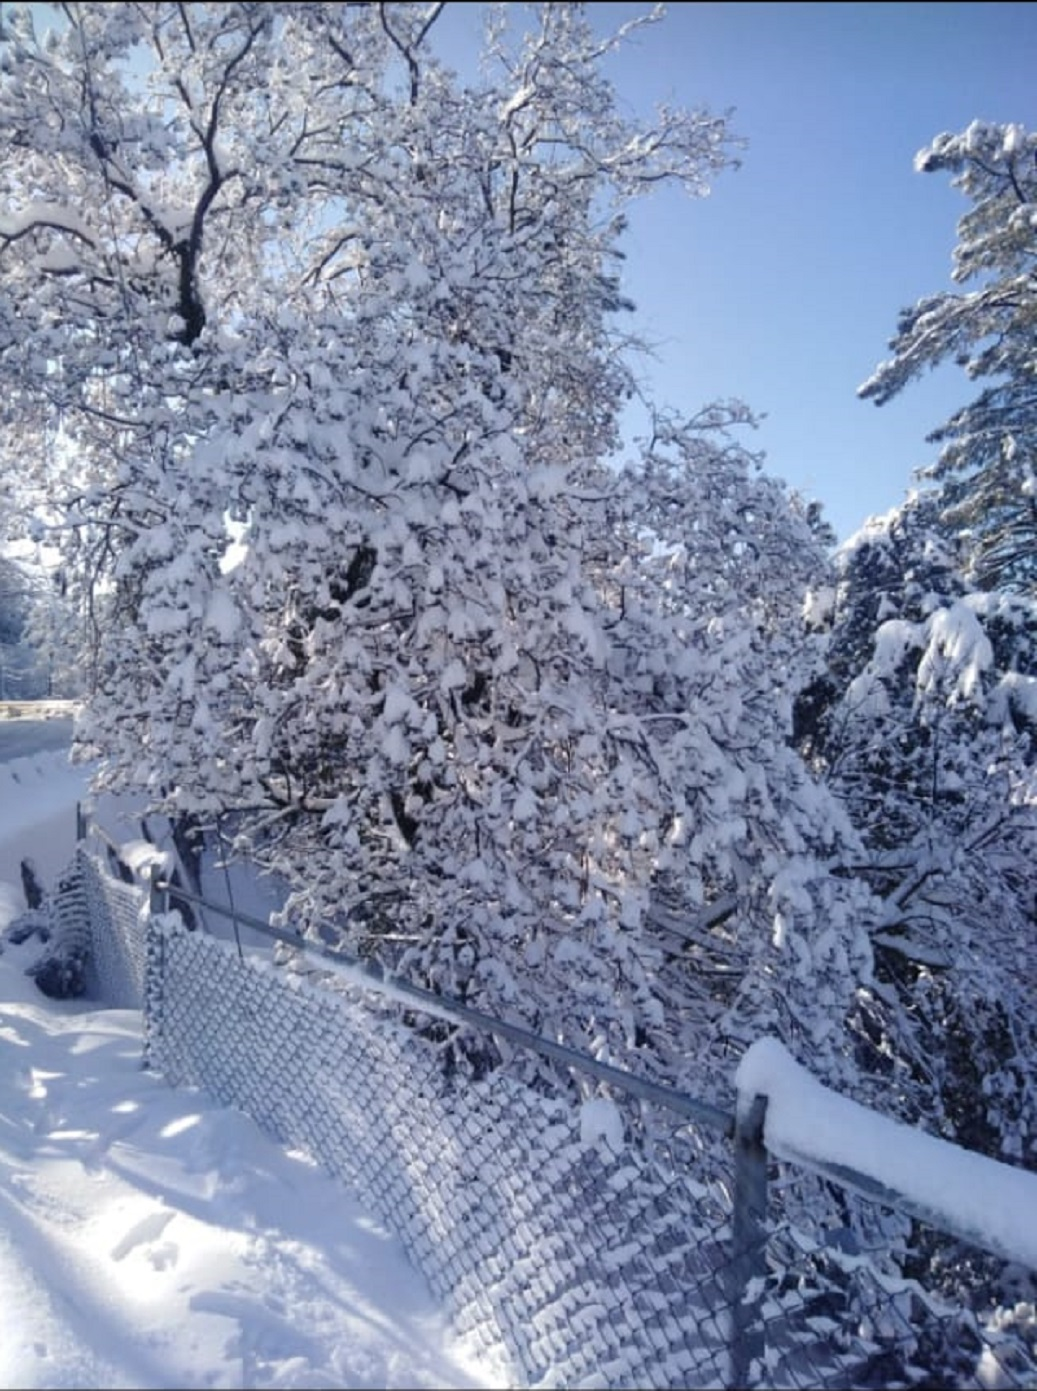 snowflake Lower Topa snowfall pictures